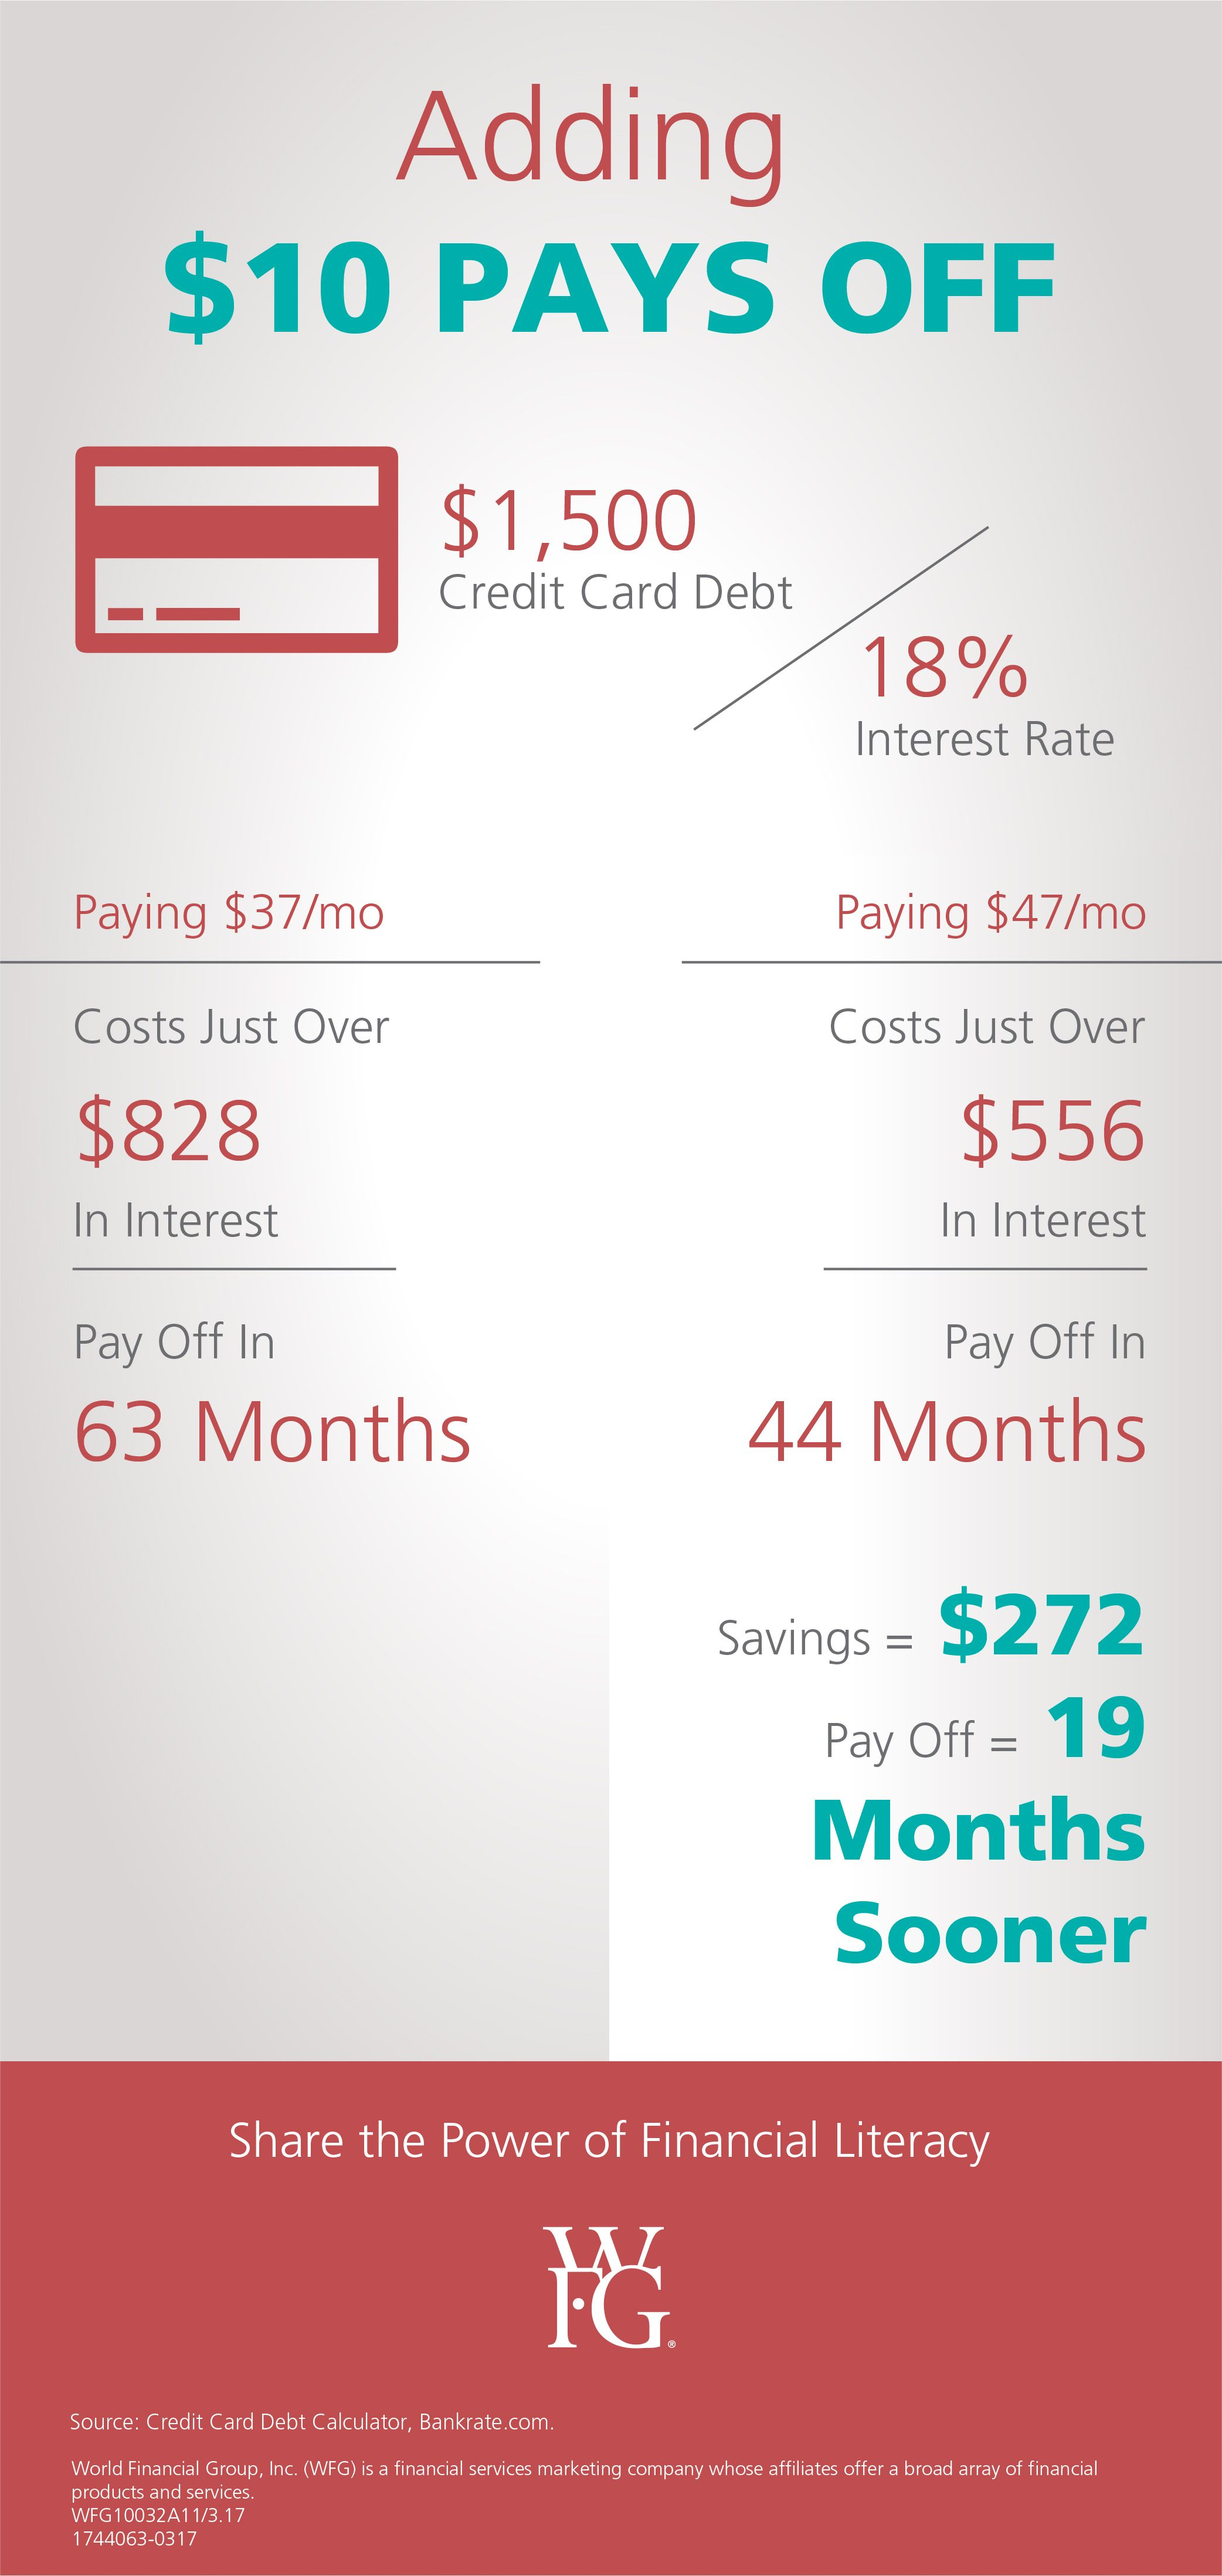 Aaa Car Insurance Quote Wfg Opportunity » Financial Literacy Month  Finance  Pinterest